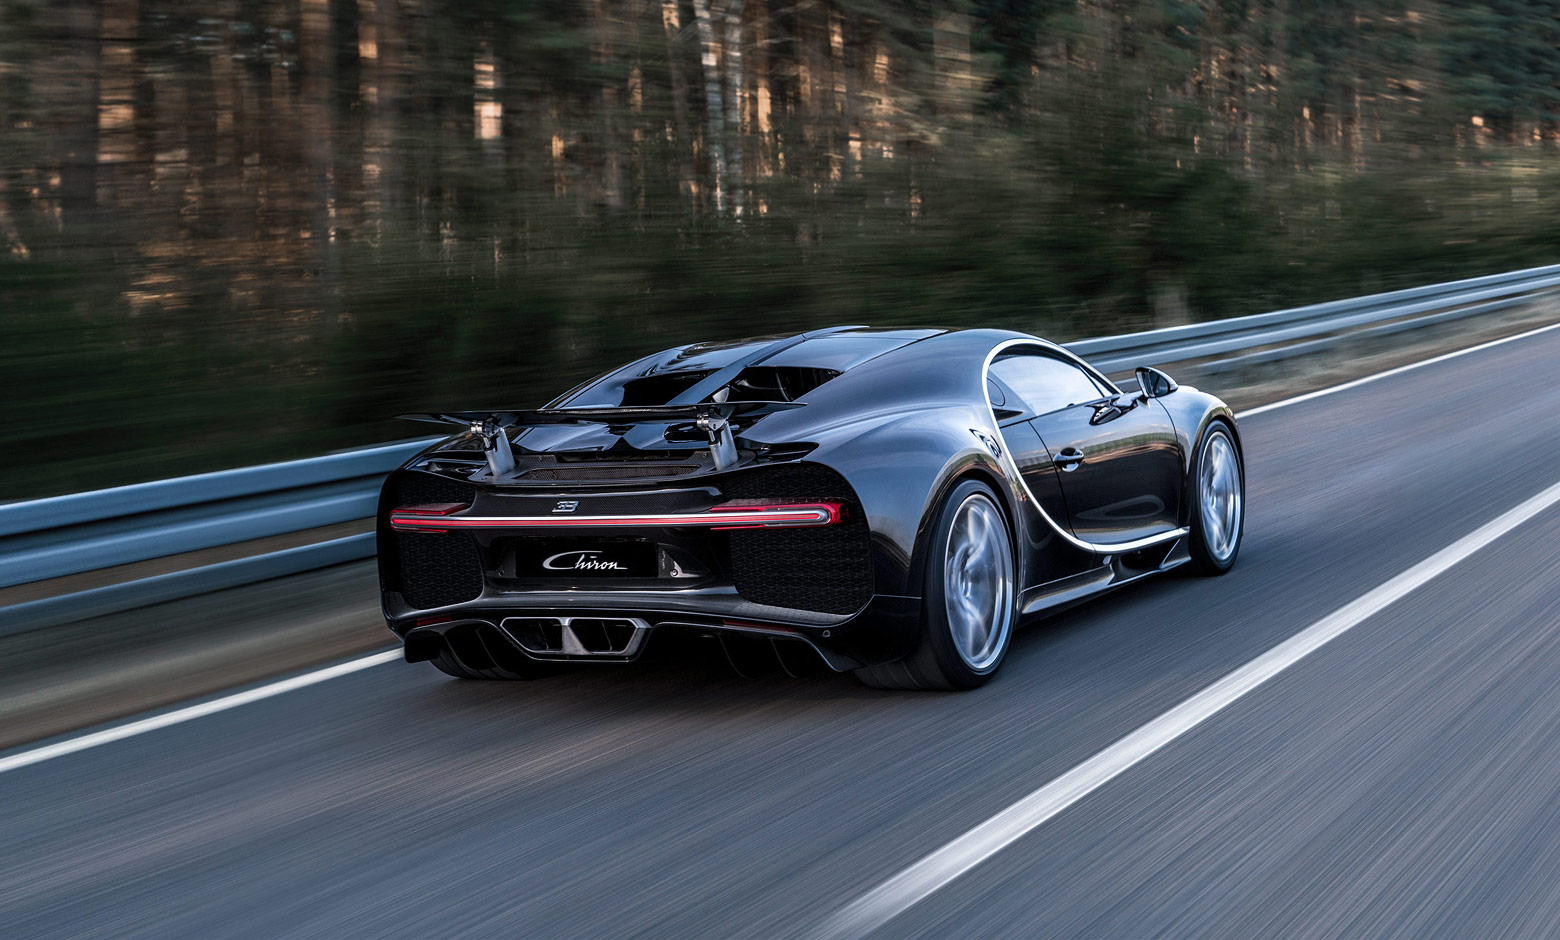 10 Things You Must Know About The New Bugatti Chiron | Bugatti Chiron in motion - Rear view